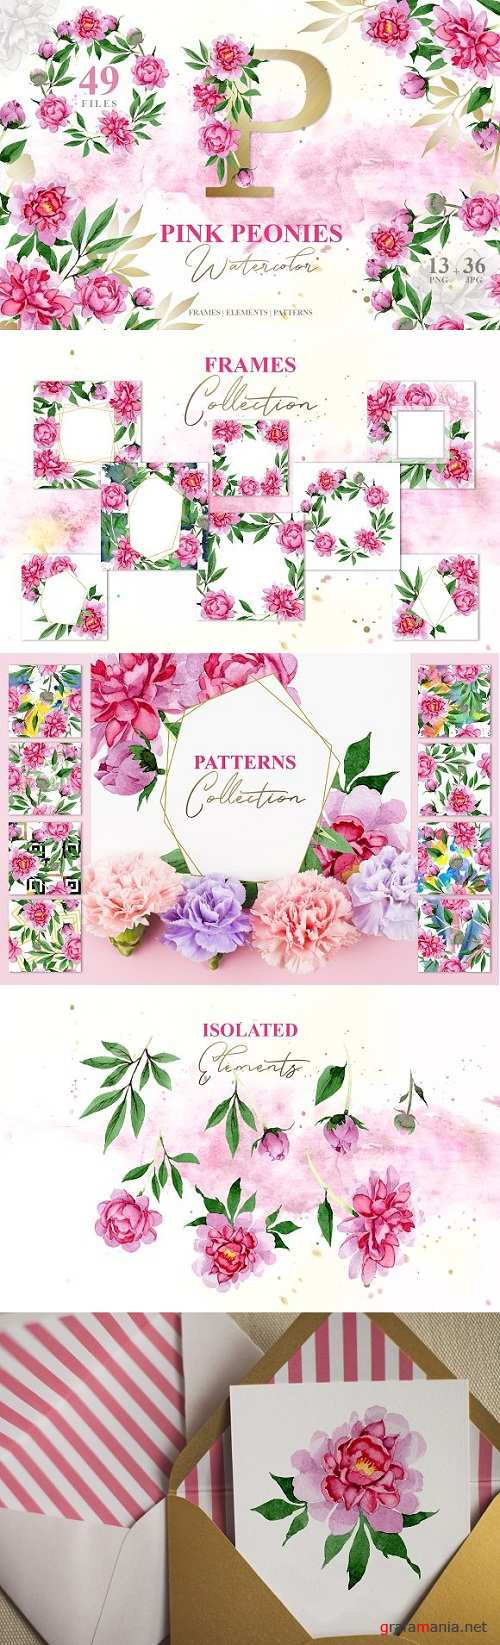 PINK PEONIES Watercolor png - 3309707 - 3517498